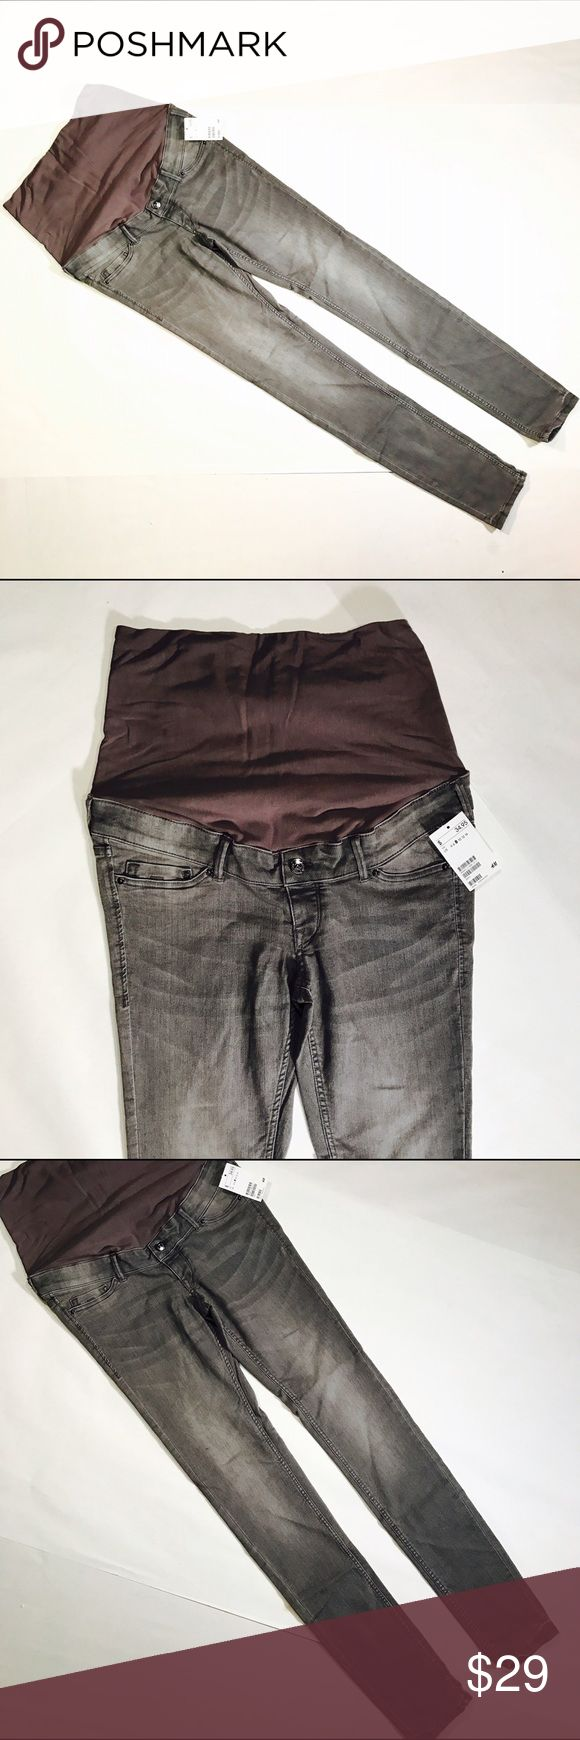 """👶🏼 H&M 👶🏼 MAMA SKINNY HIGH DENIM Cutest mama jeans I have ever seen! CONDITION: NWT, no issues  CHEST: WAIST: 32"""" LENGTH: 48"""" INSEAM: 32.5"""" *All measurements taken while item is laid flat (doubled when necessary) and measured across the front  MATERIAL: cotton polyester elastase  STRETCH: yes INSTAGRAM @ORNAMENTALSTONE 🚫Trading  🚫Modeling H&M Pants Skinny"""